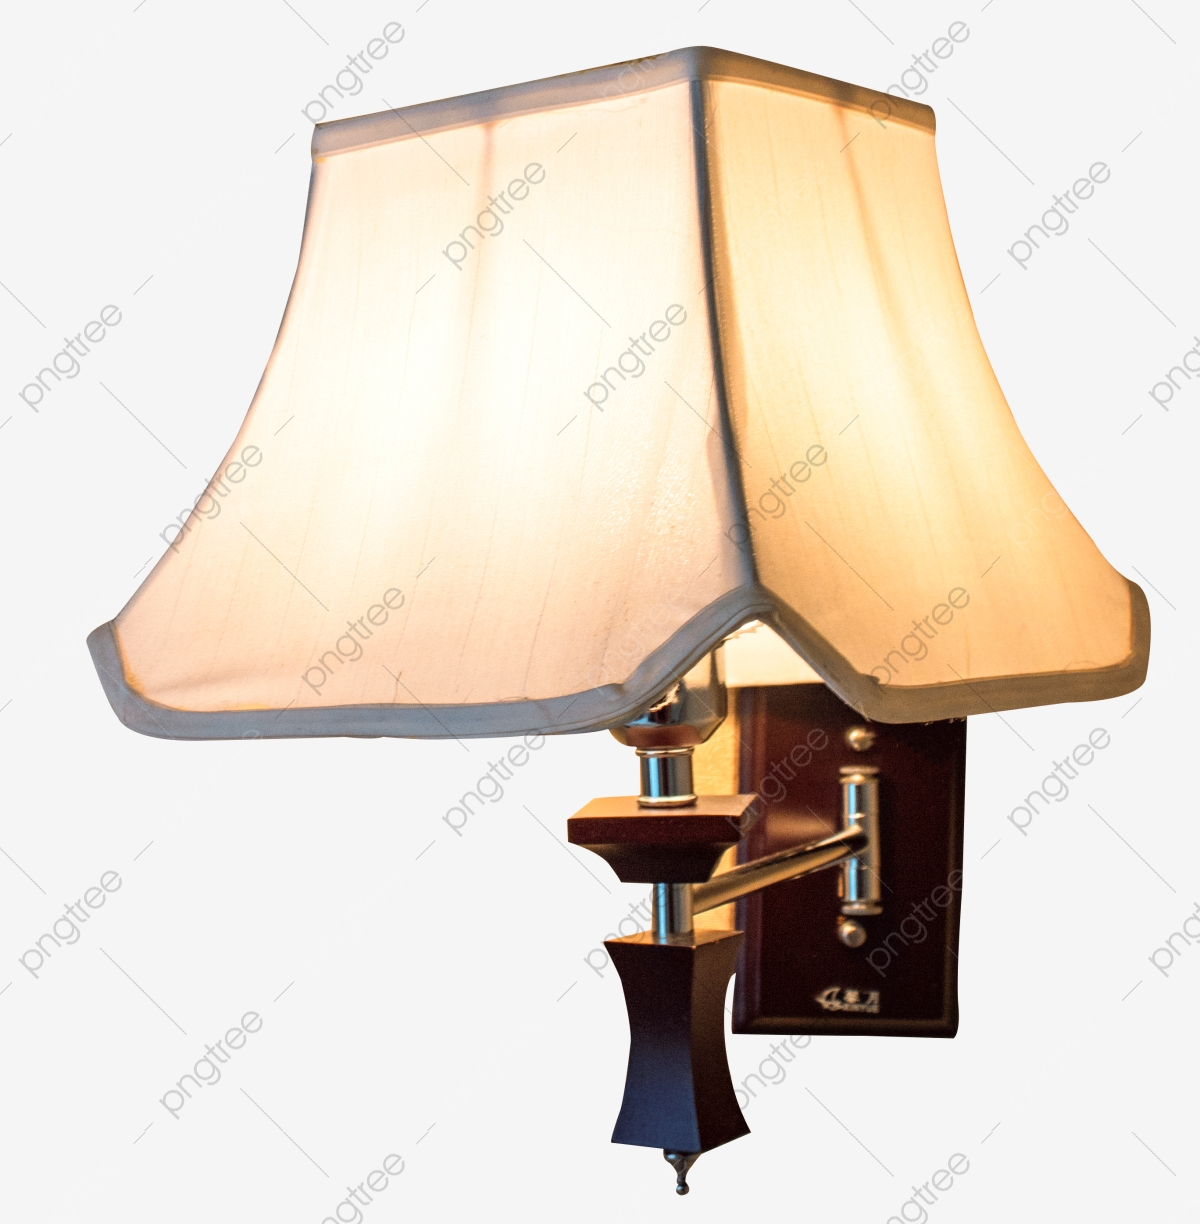 Wall Retro Lighting Hanging Lamp Wall Lamp Lighting Equipment Bedroom Lamp Png Transparent Clipart Image And Psd File For Free Download